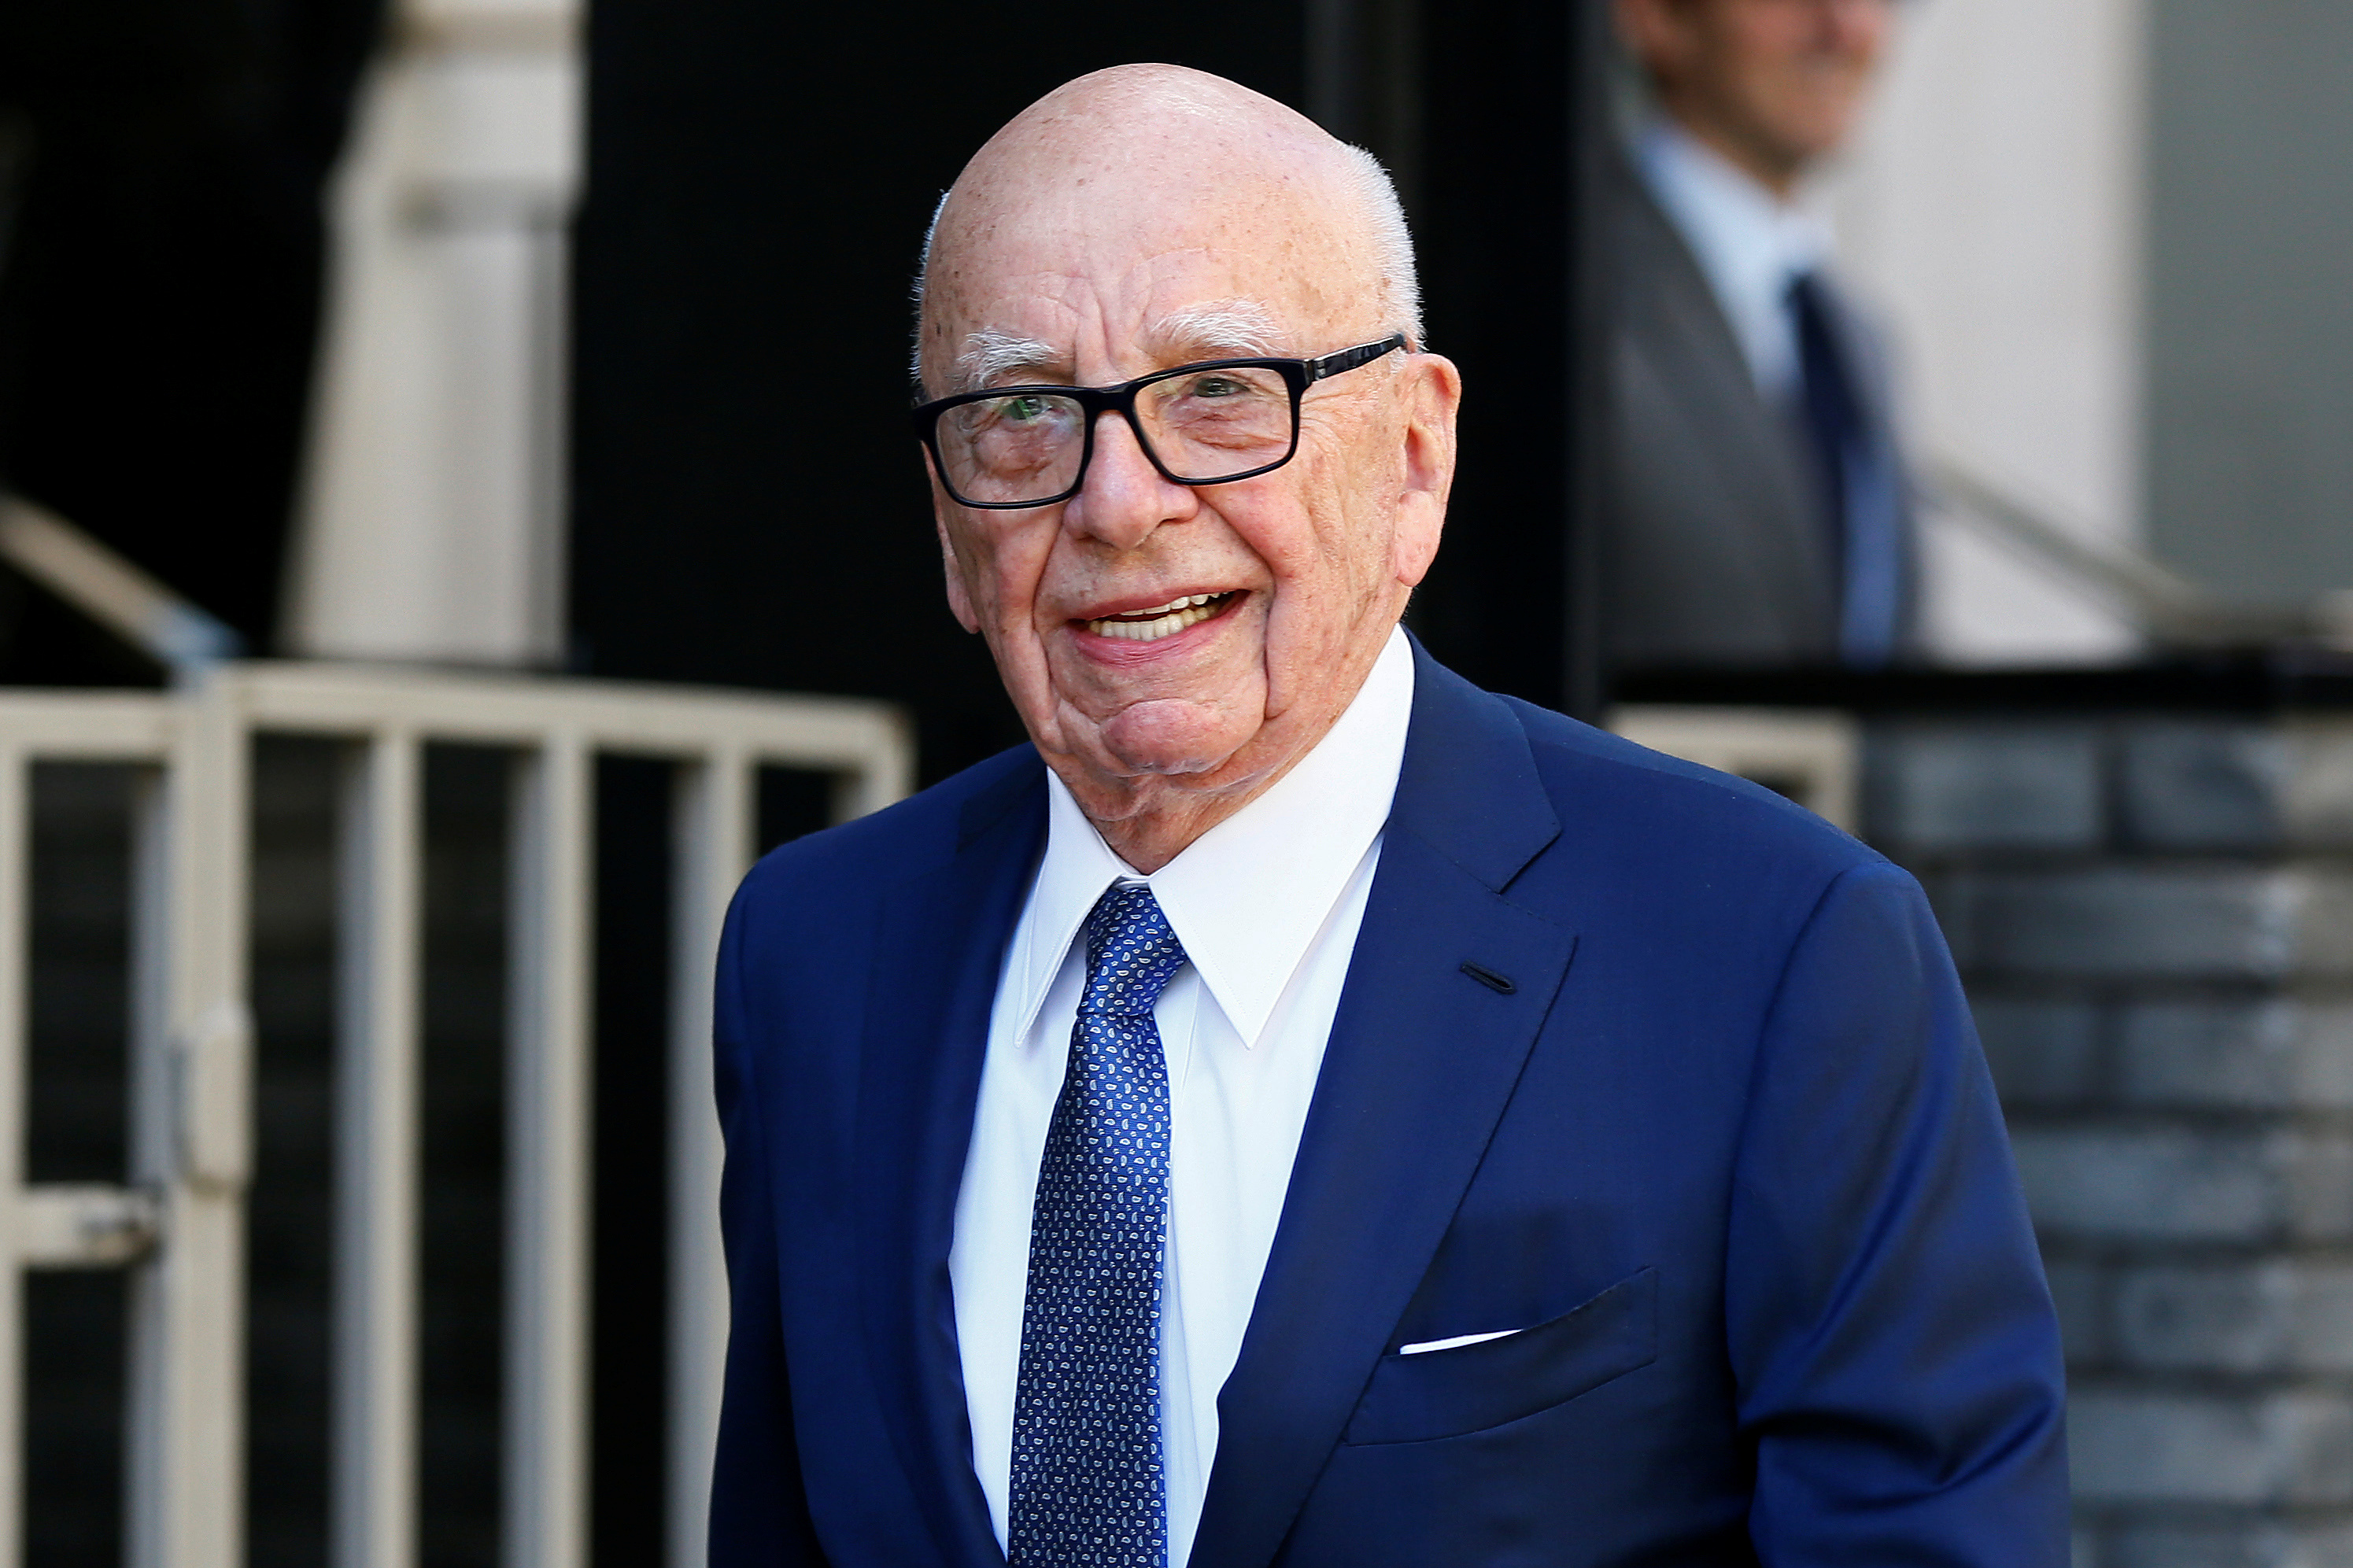 Murdoch seeks permission to merge UK's Times and Sunday Times